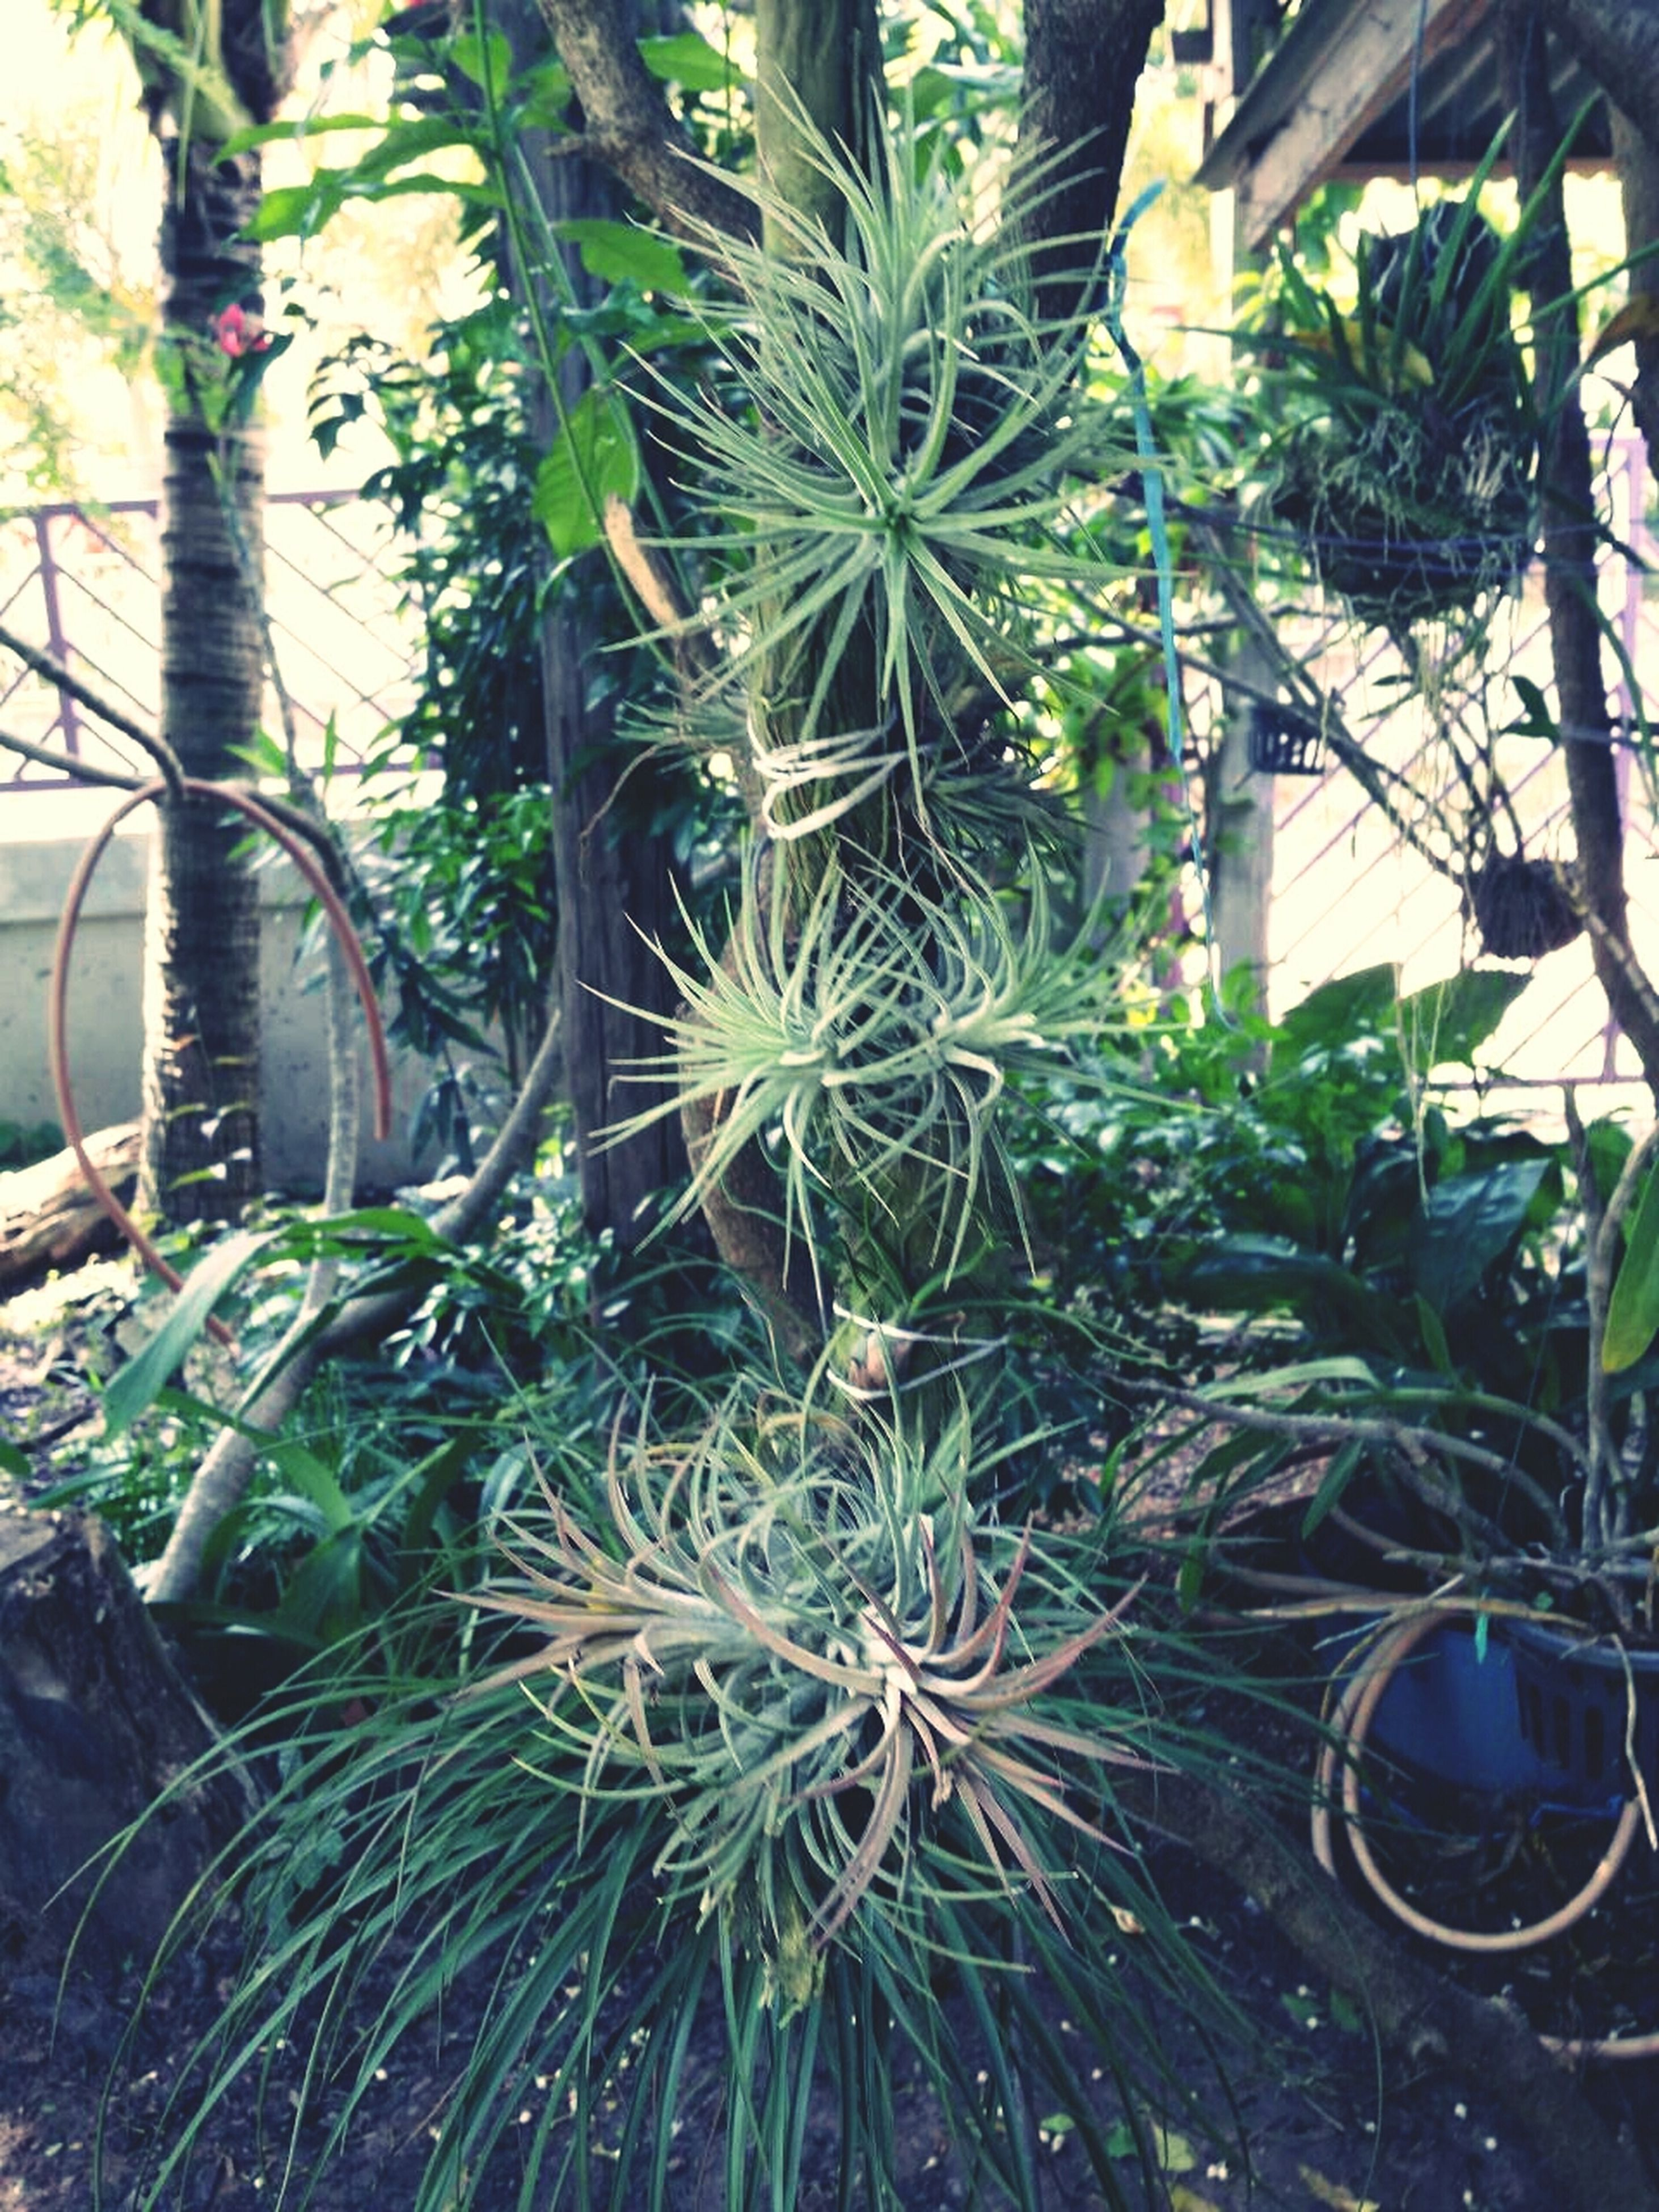 growth, plant, potted plant, leaf, palm tree, green color, tree, nature, cactus, growing, day, no people, front or back yard, built structure, outdoors, sunlight, high angle view, tree trunk, flower, beauty in nature